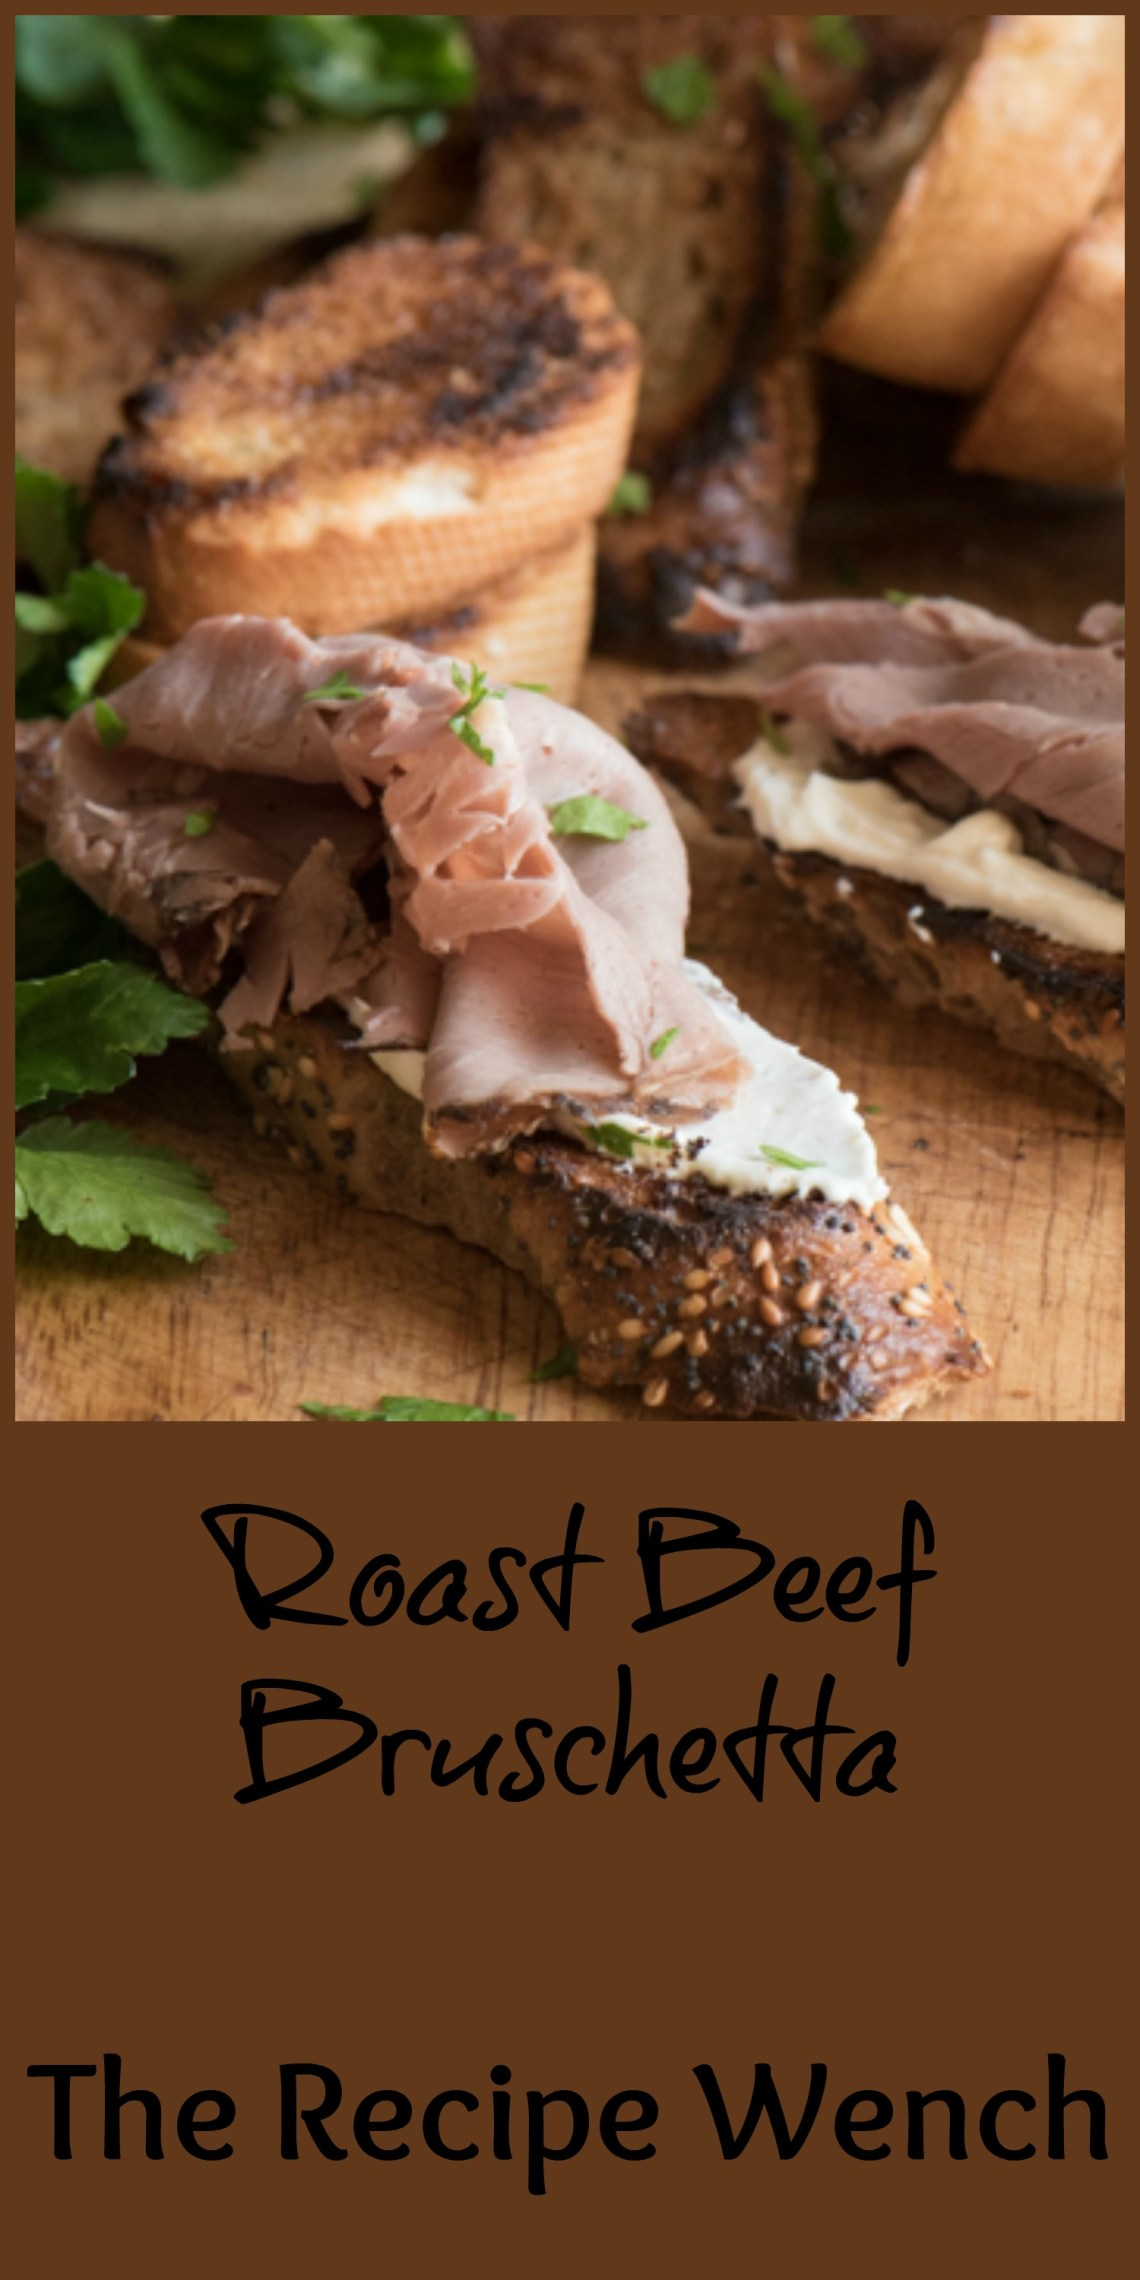 Roast Beef Bruschetta - rub a little garlic on toast, maybe add some horseradish, cream cheese and BOOM! | The Recipe Wench